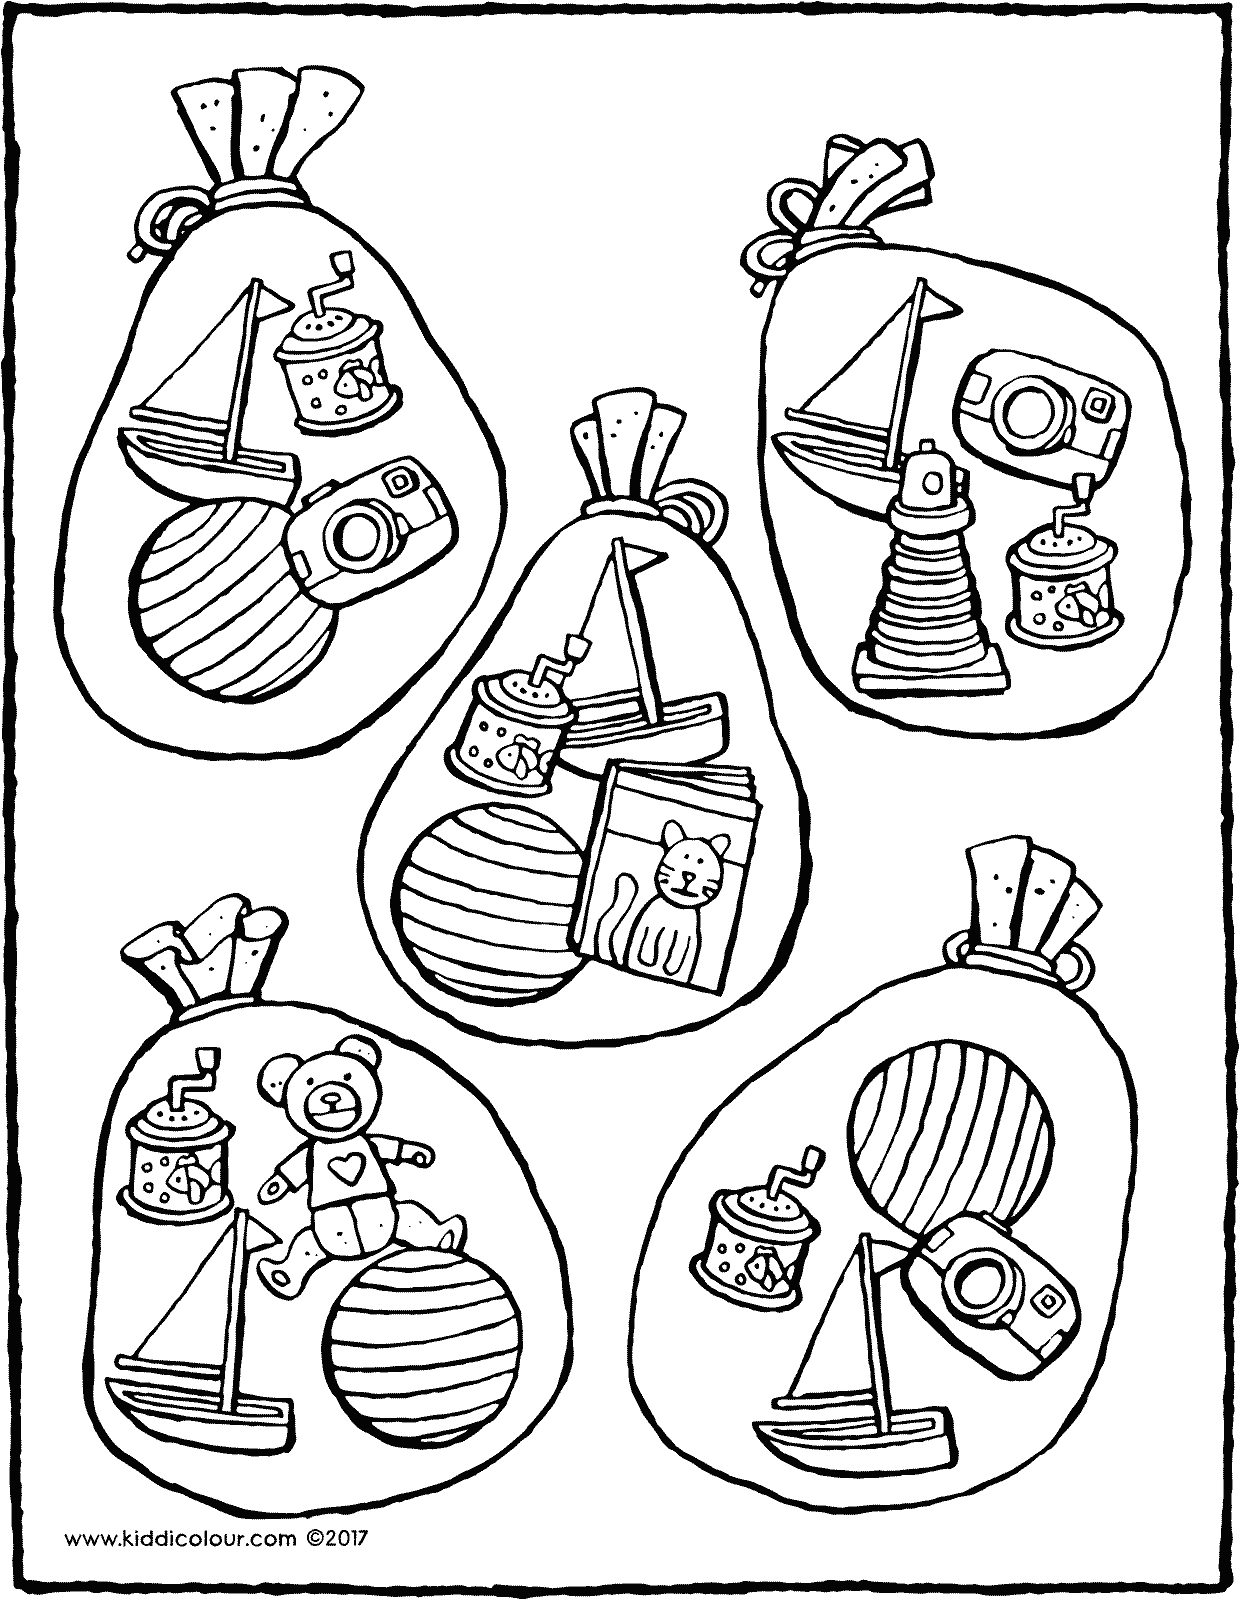 which sacks are filled with the same toys colouring page drawing picture 01V